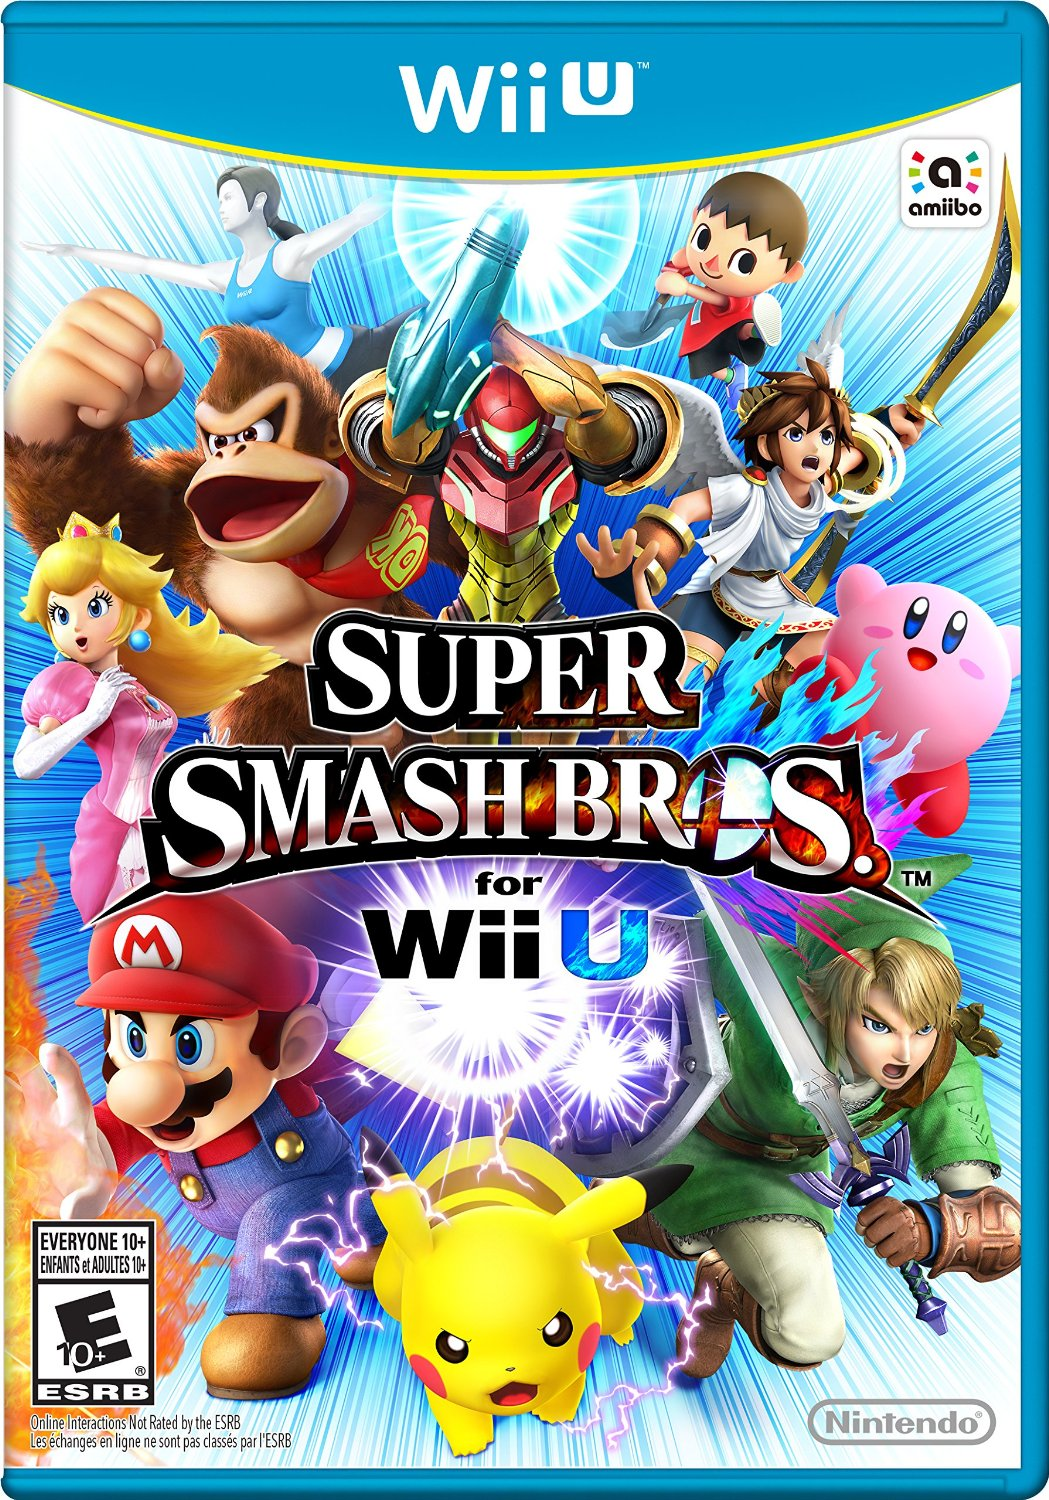 Nintendo Updates Super Smash Bros For Wii U Box Art With